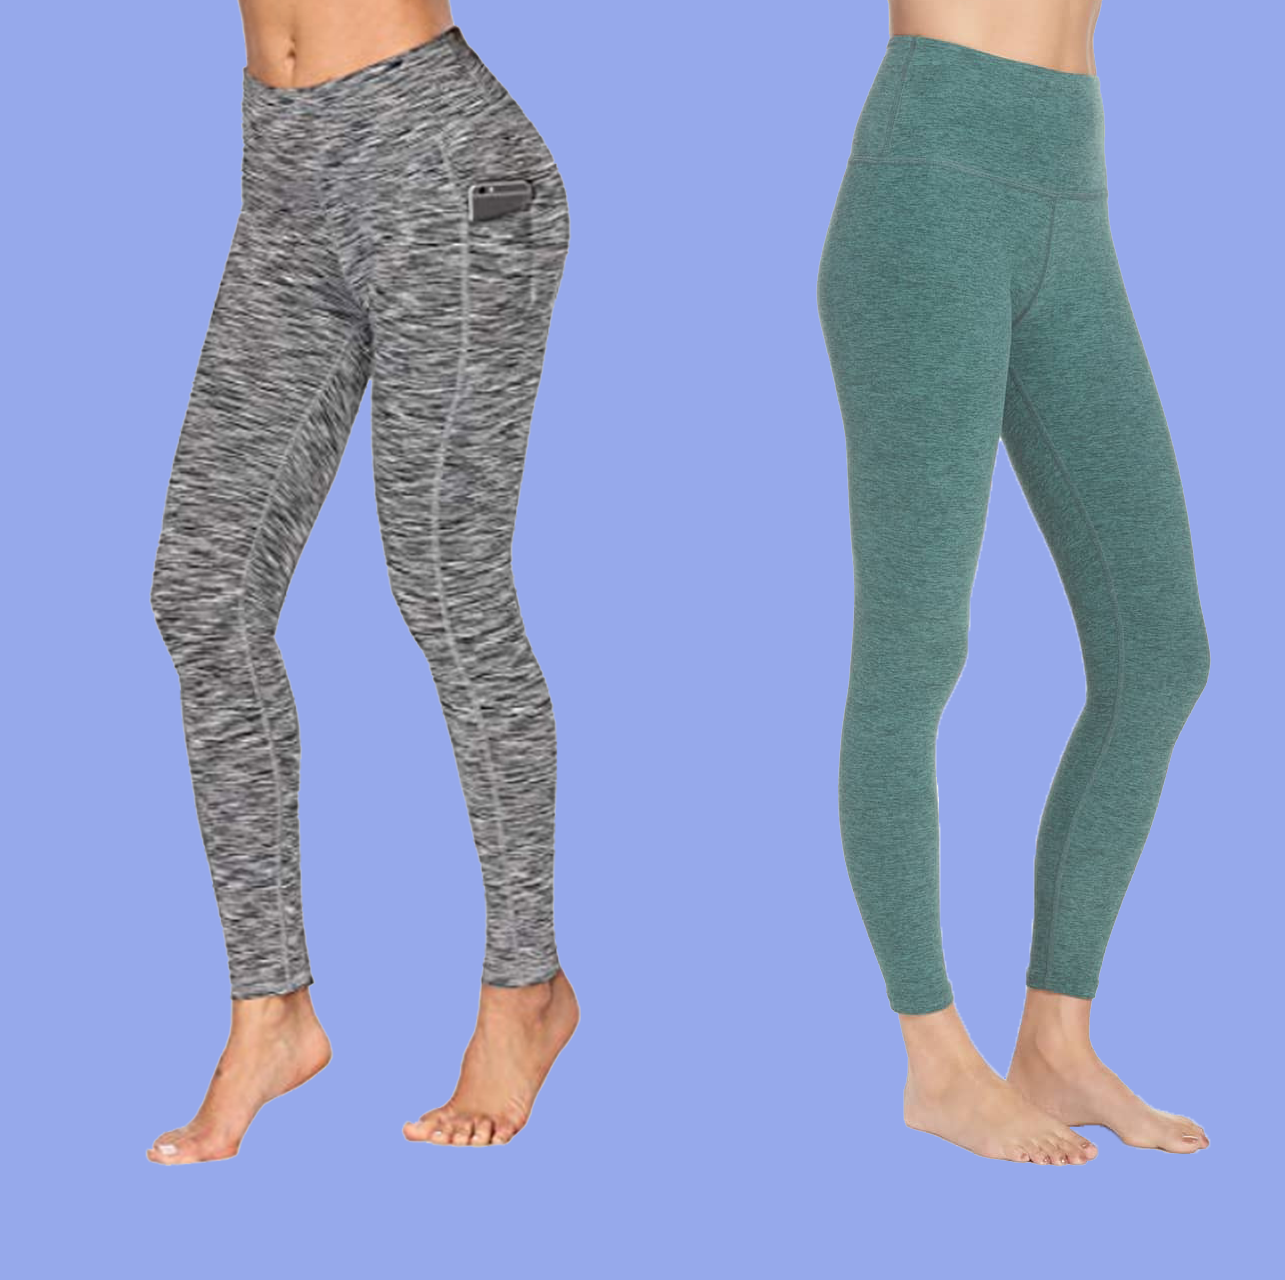 12 Best Yoga Pants You'll Want to Wear All Day